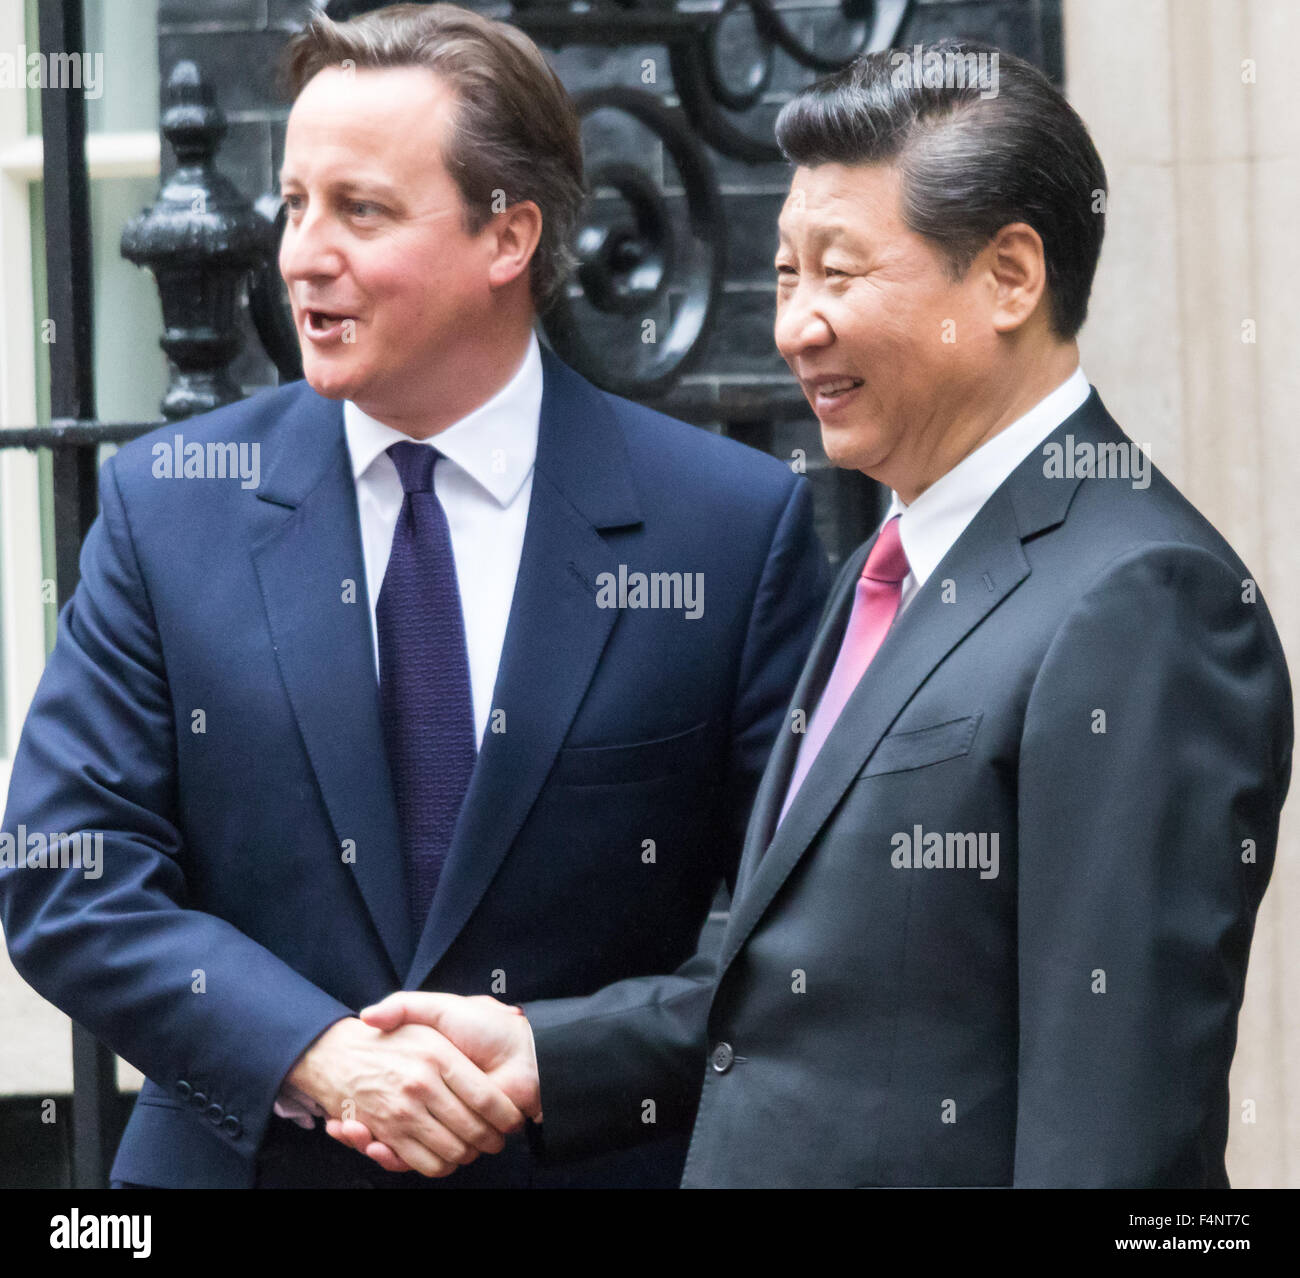 London, UK. October 21st 2015. British Prime Minister David Cameron greets Chinese President Xi Jinping  as he arrives - Stock Image